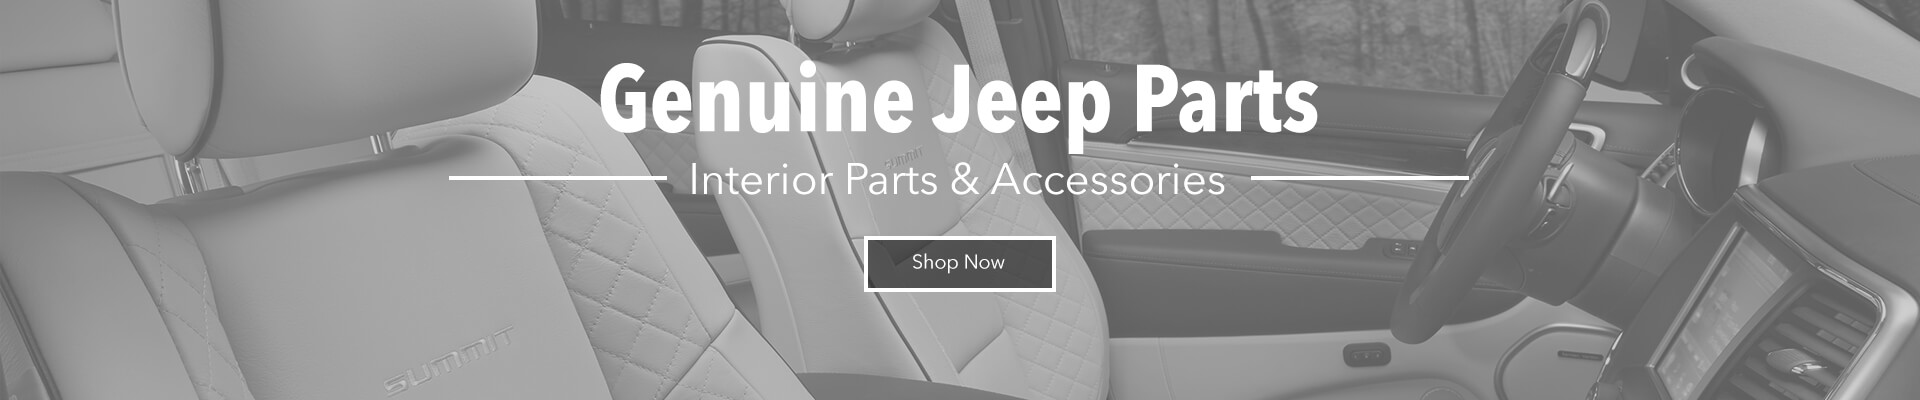 Genuine Jeep Interior Parts & Accessories